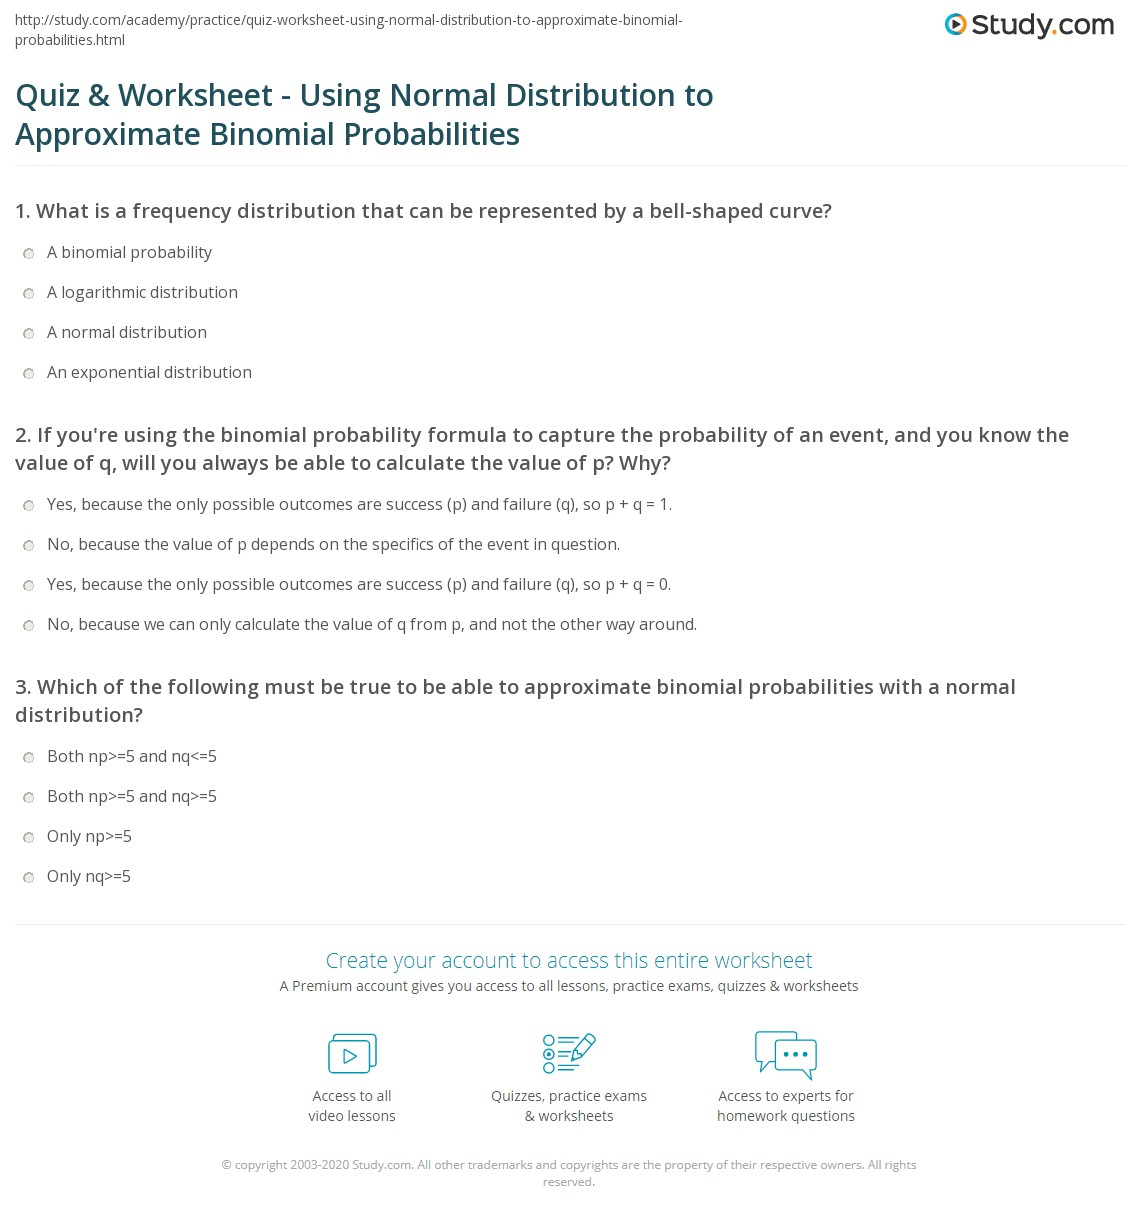 worksheet Probability Review Worksheet quiz worksheet using normal distribution to approximate if youre the binomial probability formula capture of an event and you know value q will always b